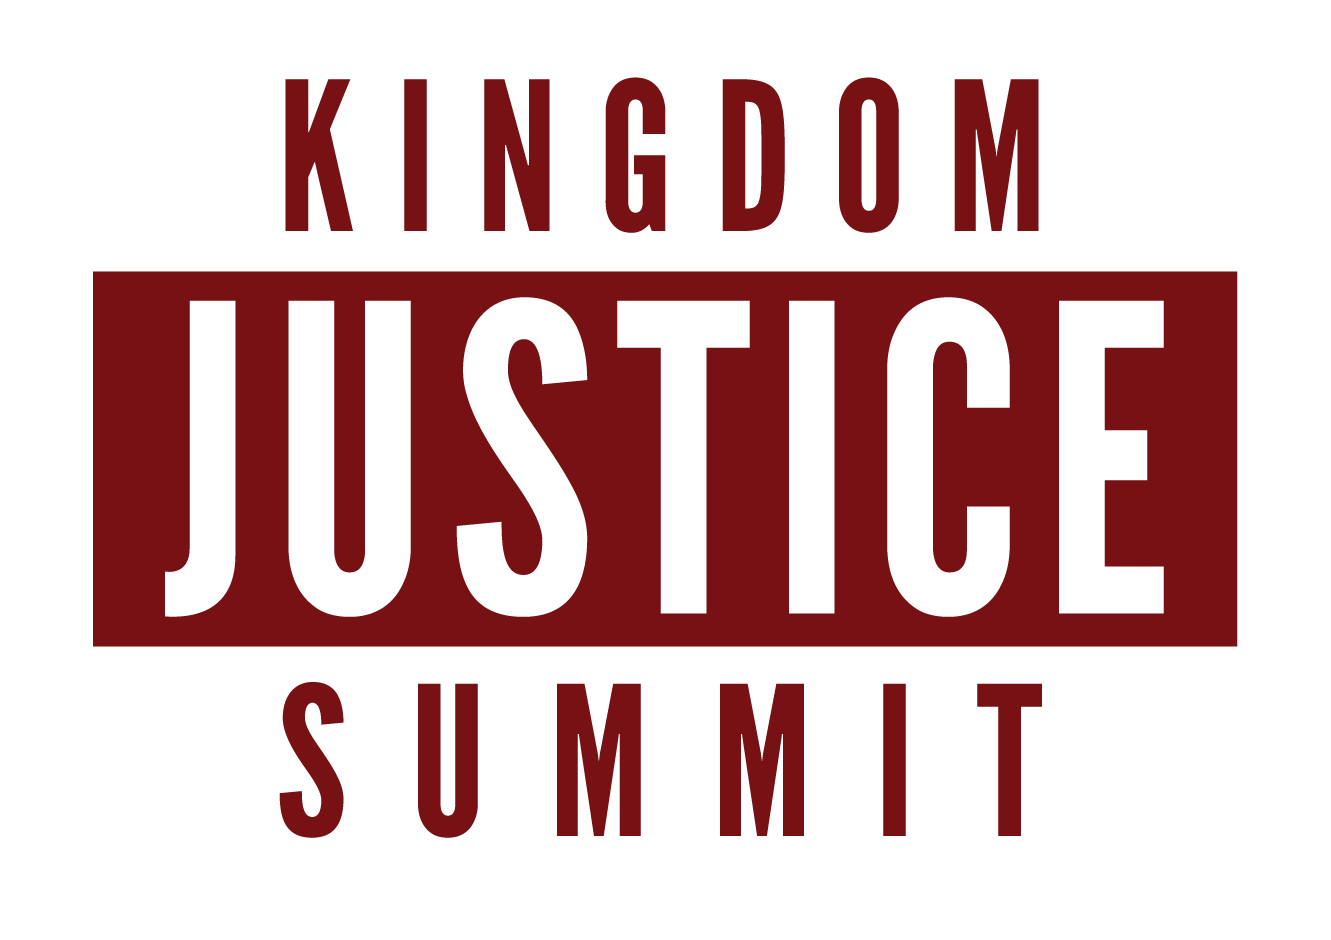 Kingdom Justice Summit